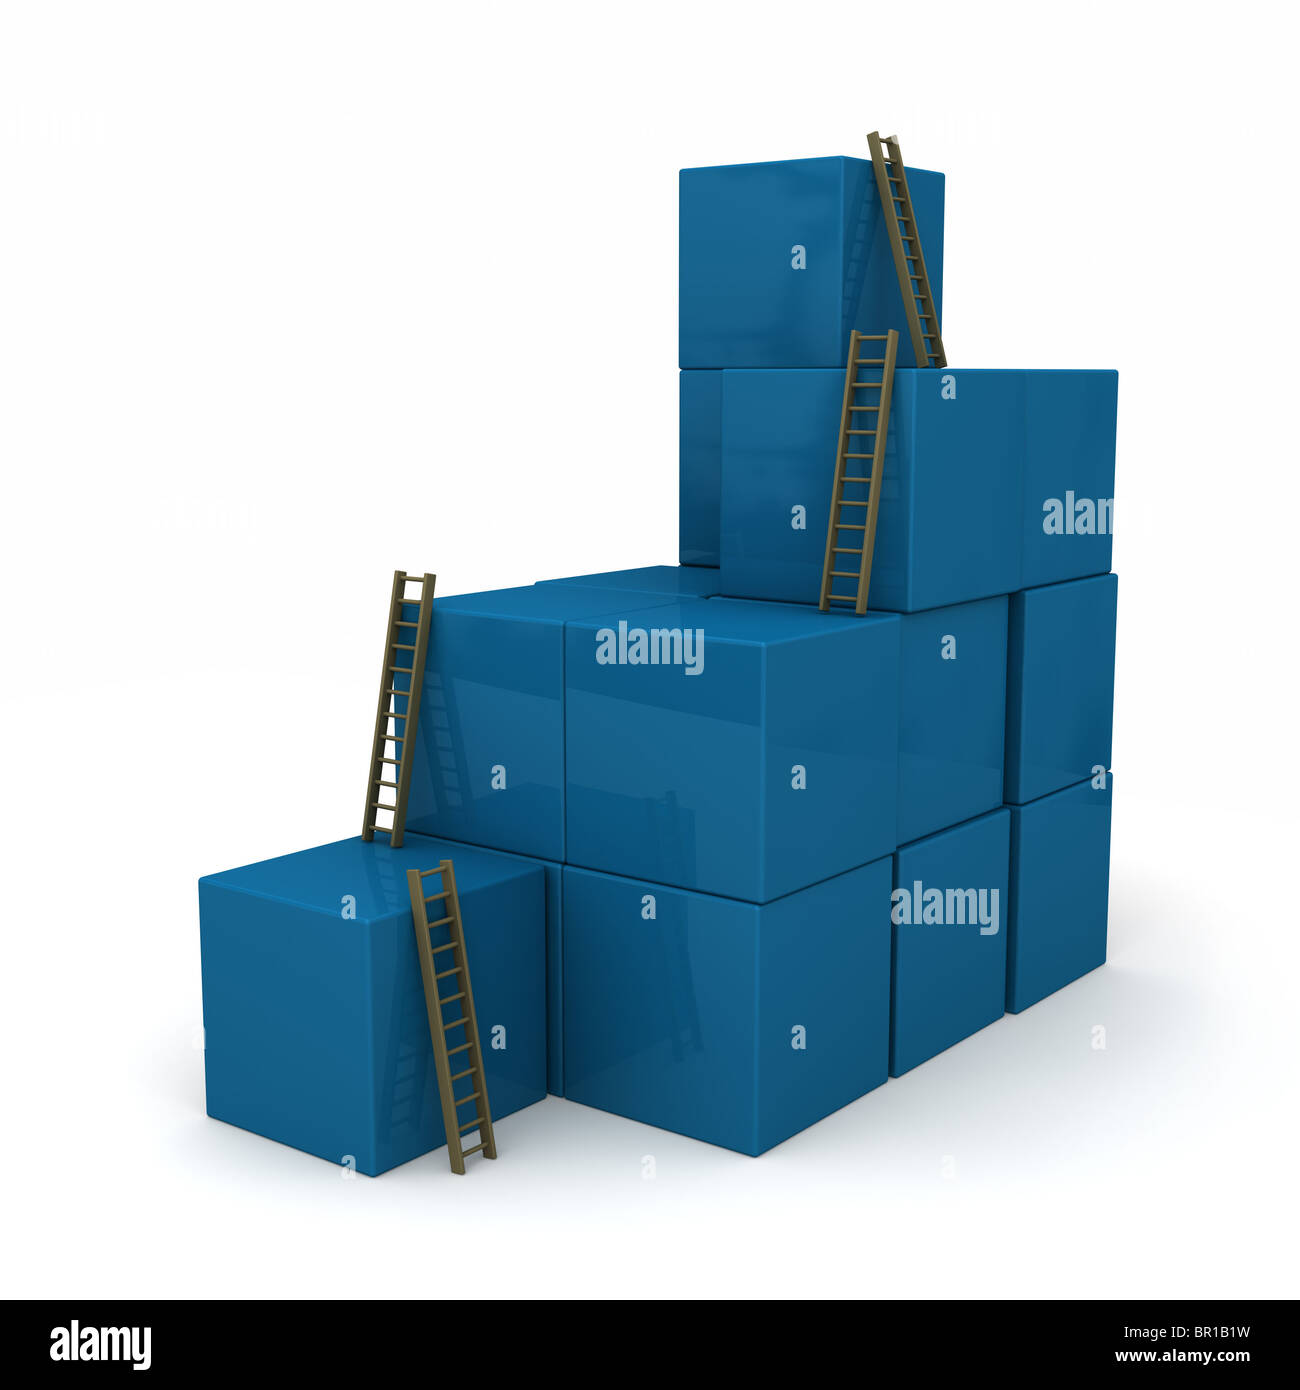 Blue blocks randomly stacked with ladders to the top. Isolated on white - Stock Image